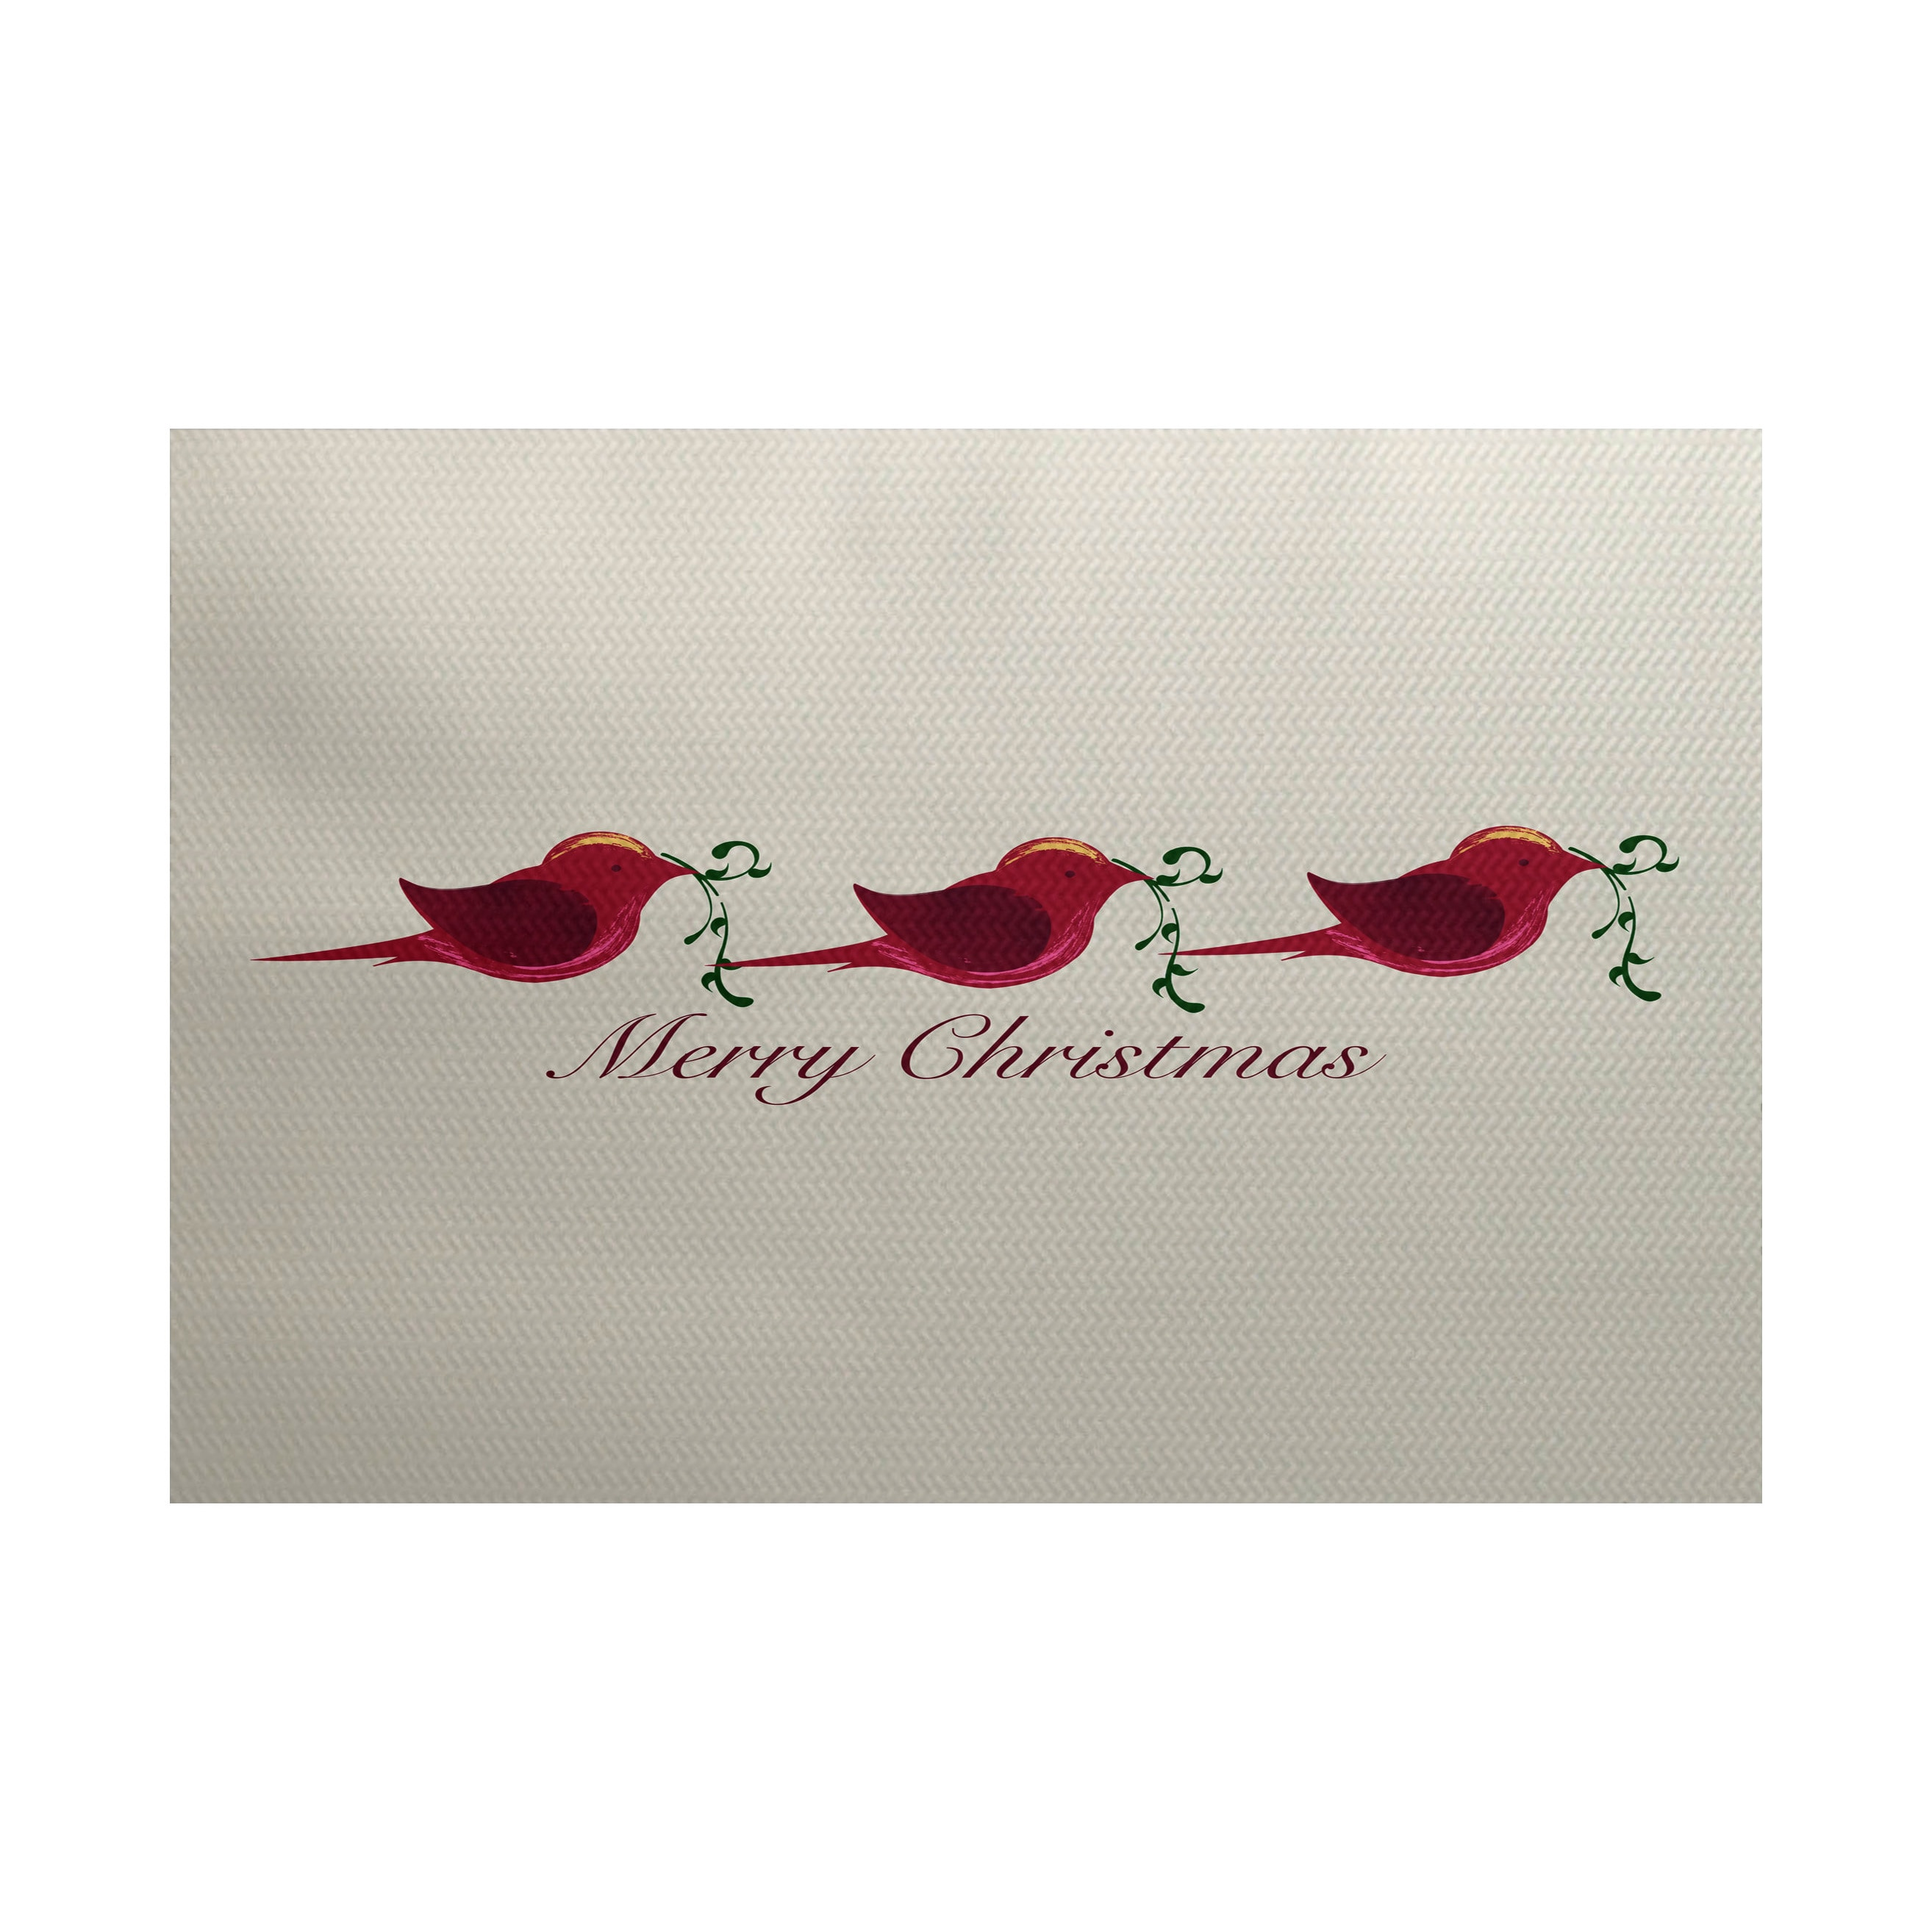 Merry Christmas Birds Word Print Indoor Outdoor Rug 3 X 5